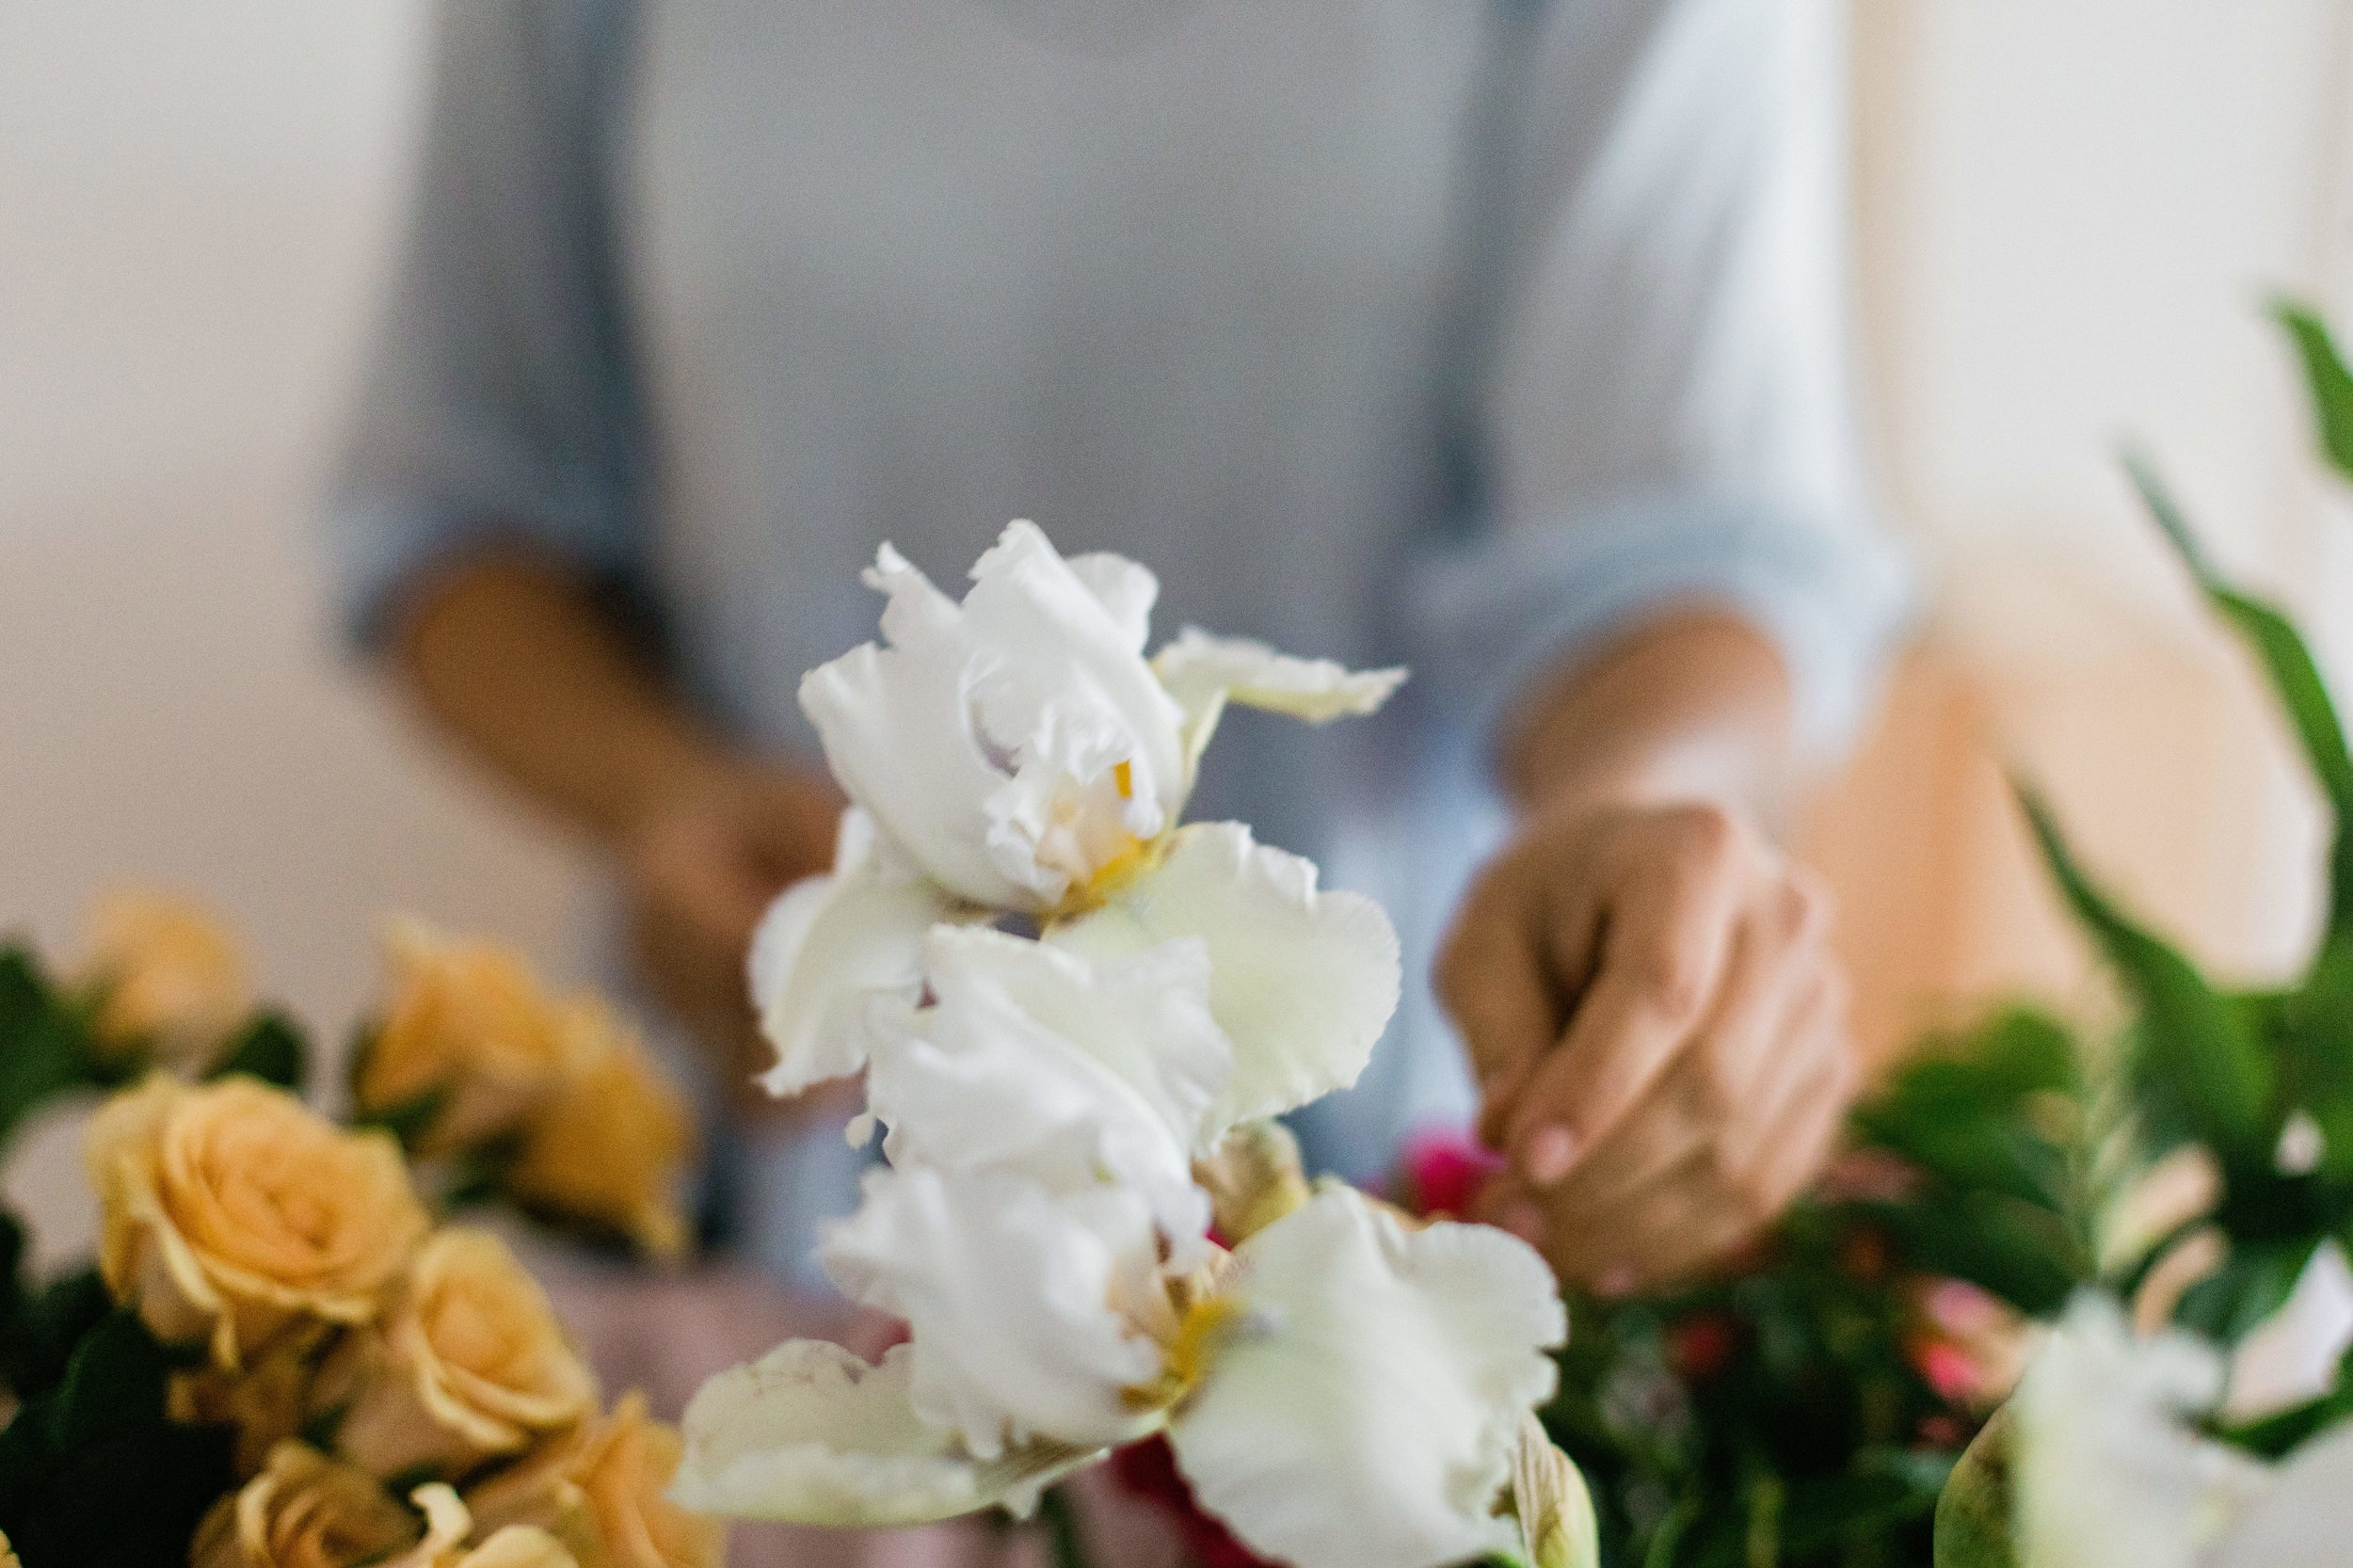 WORKSHOPS - Hosting a small gathering or other event and looking for a fun activity? We work with you to design a private, flower based workshop and bring everything to you. Contact Us